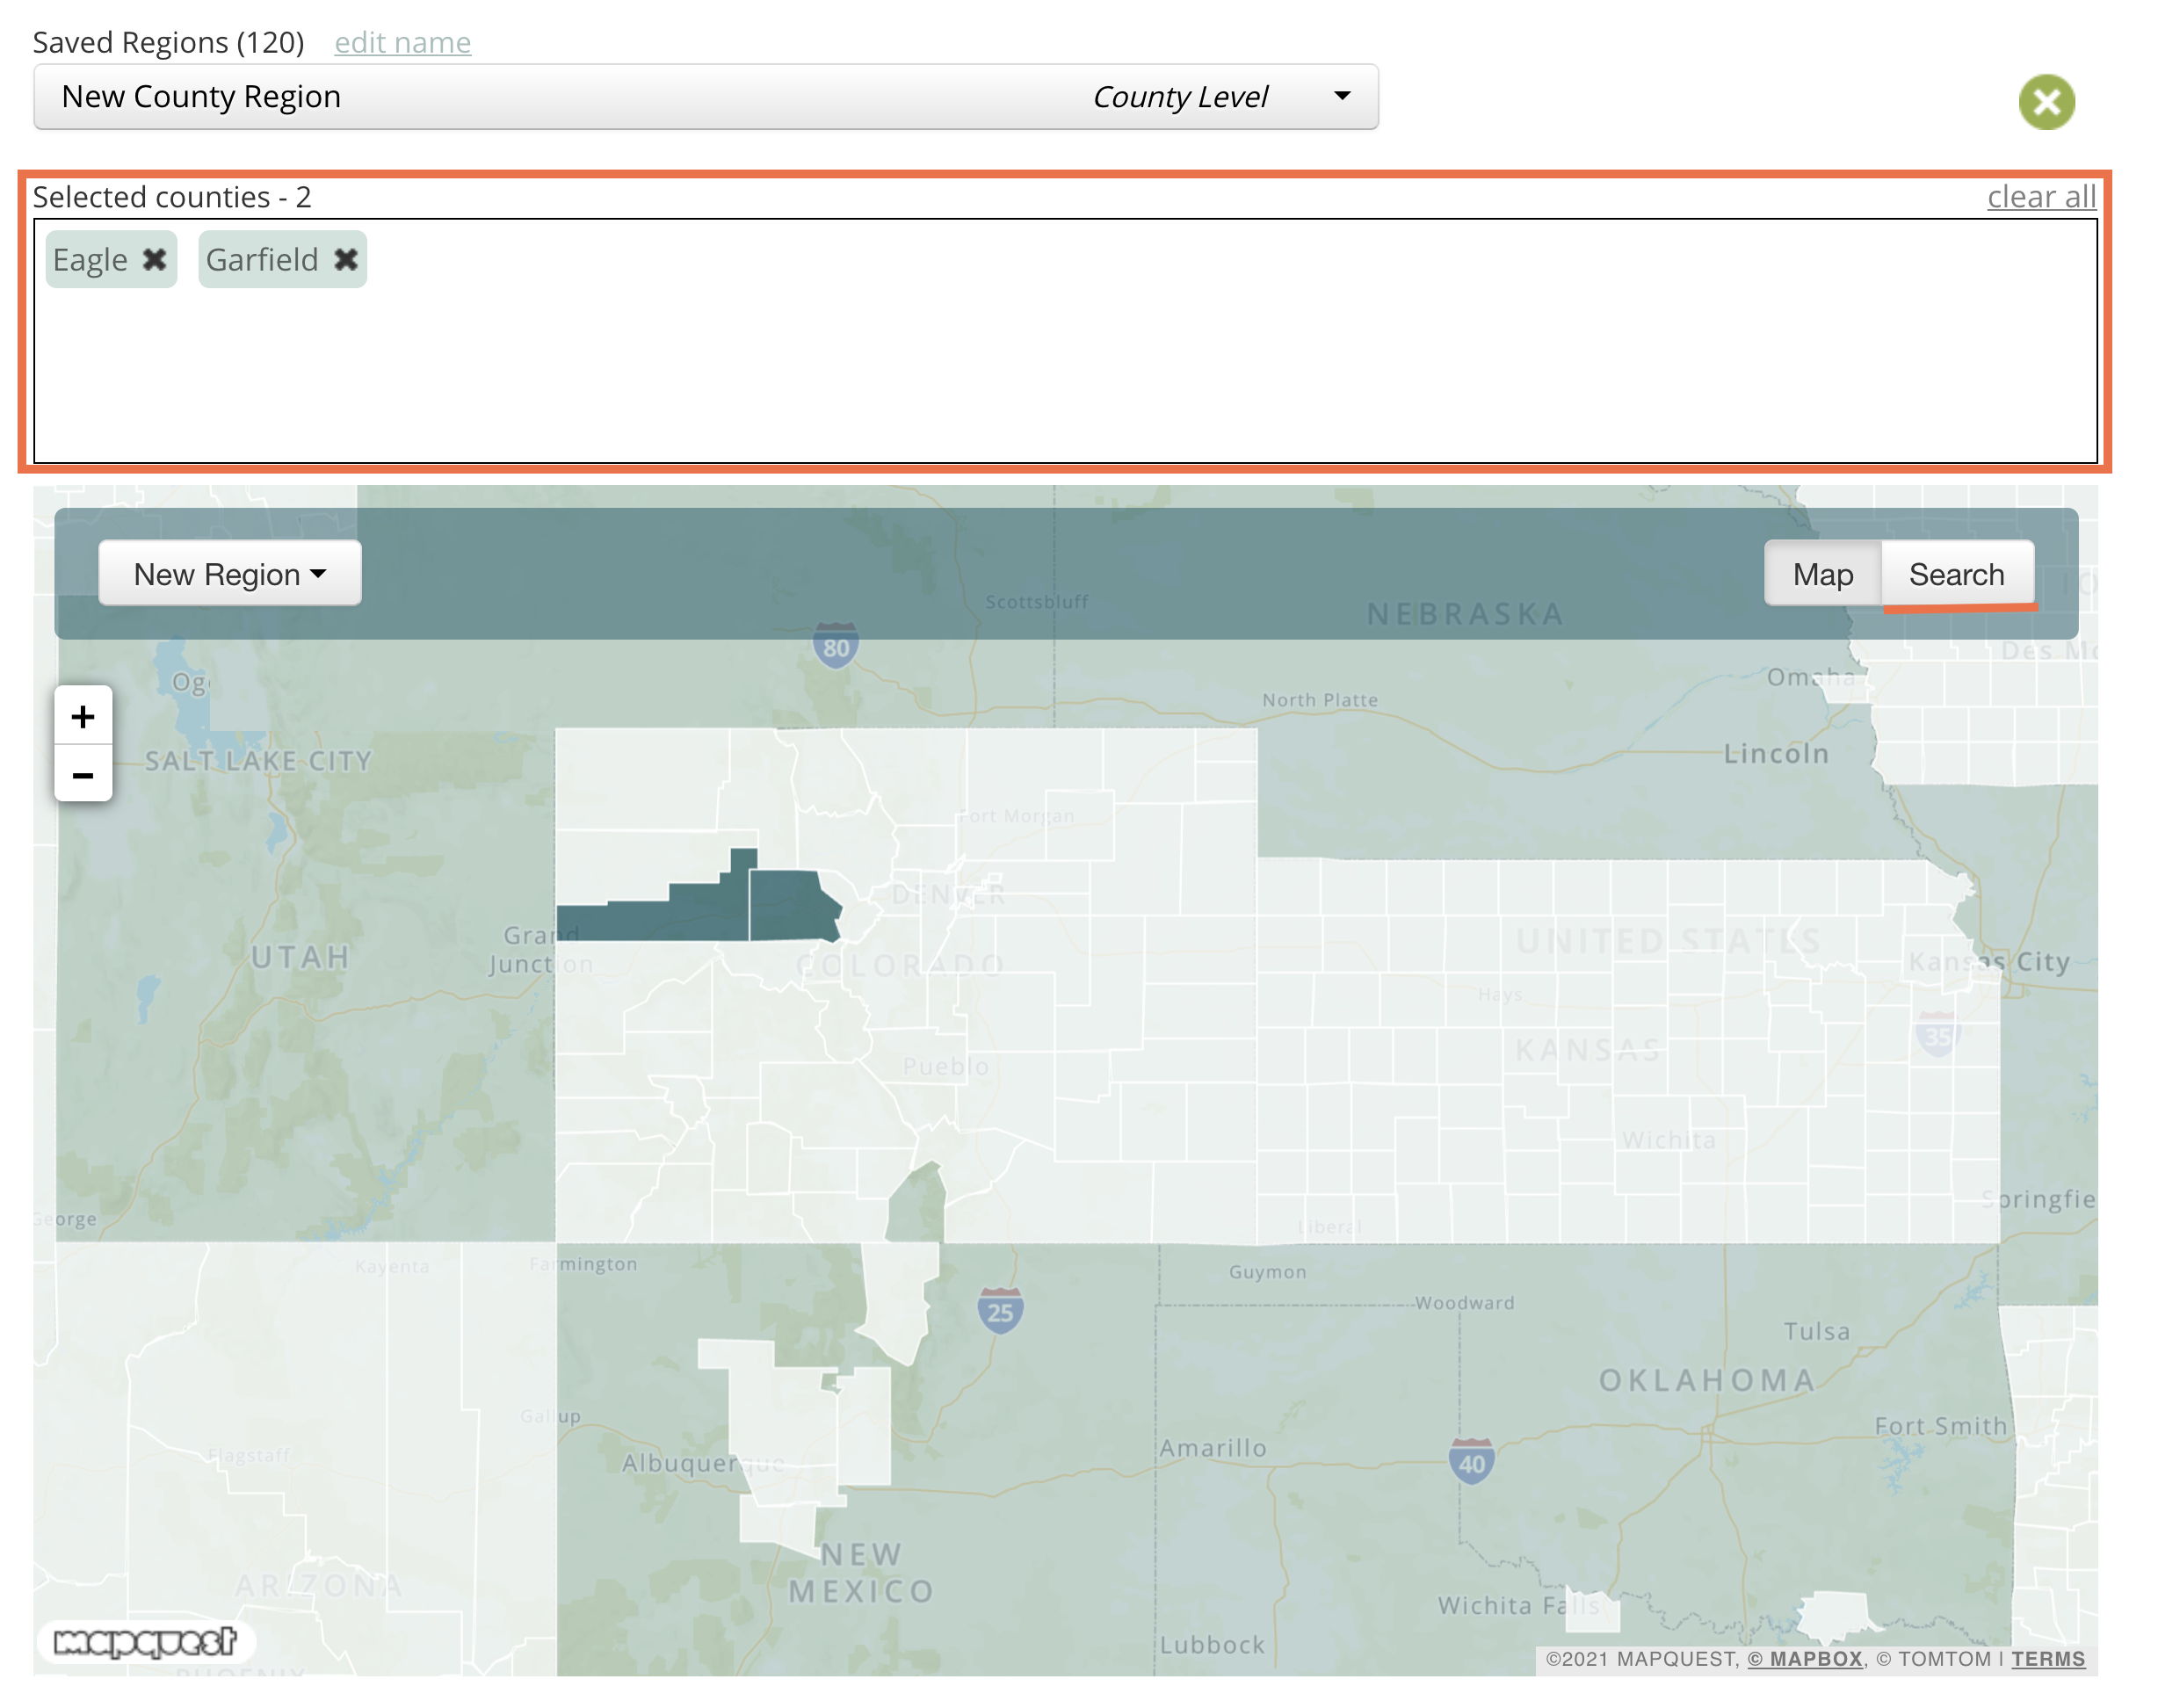 Screenshot of the region selector on the map view.